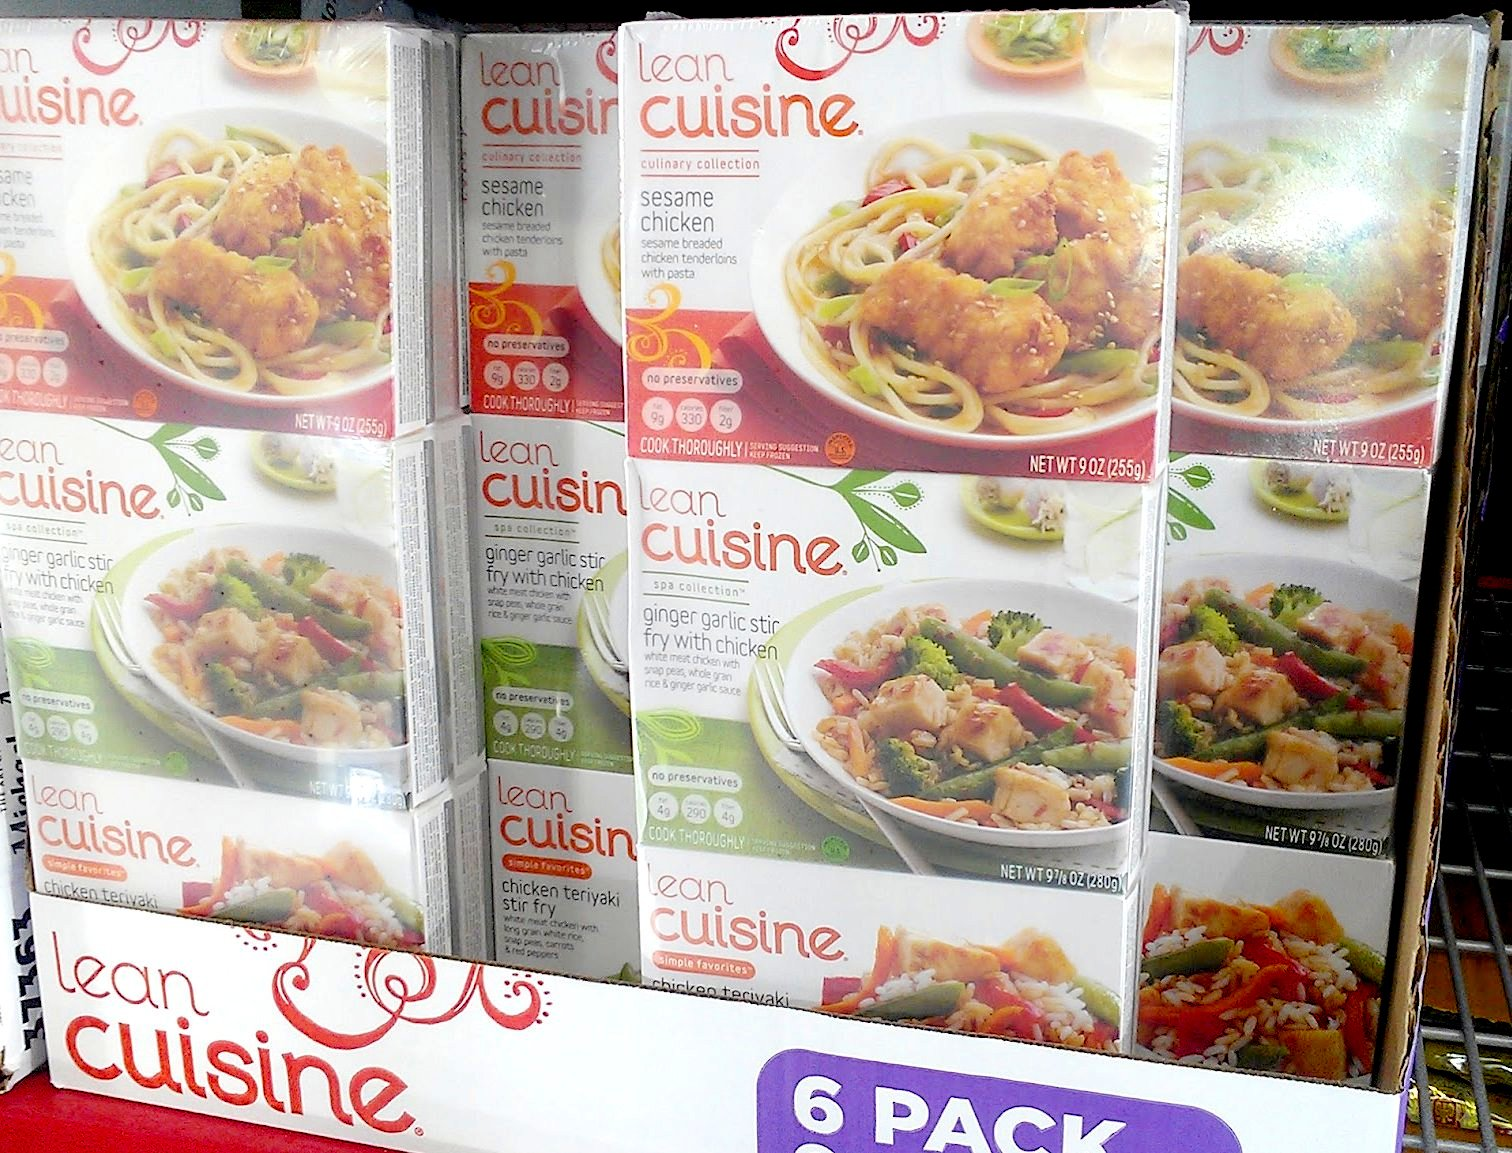 Photo: The Lean Cuisine flavors available right now at Sam's Club are Asian inspired.